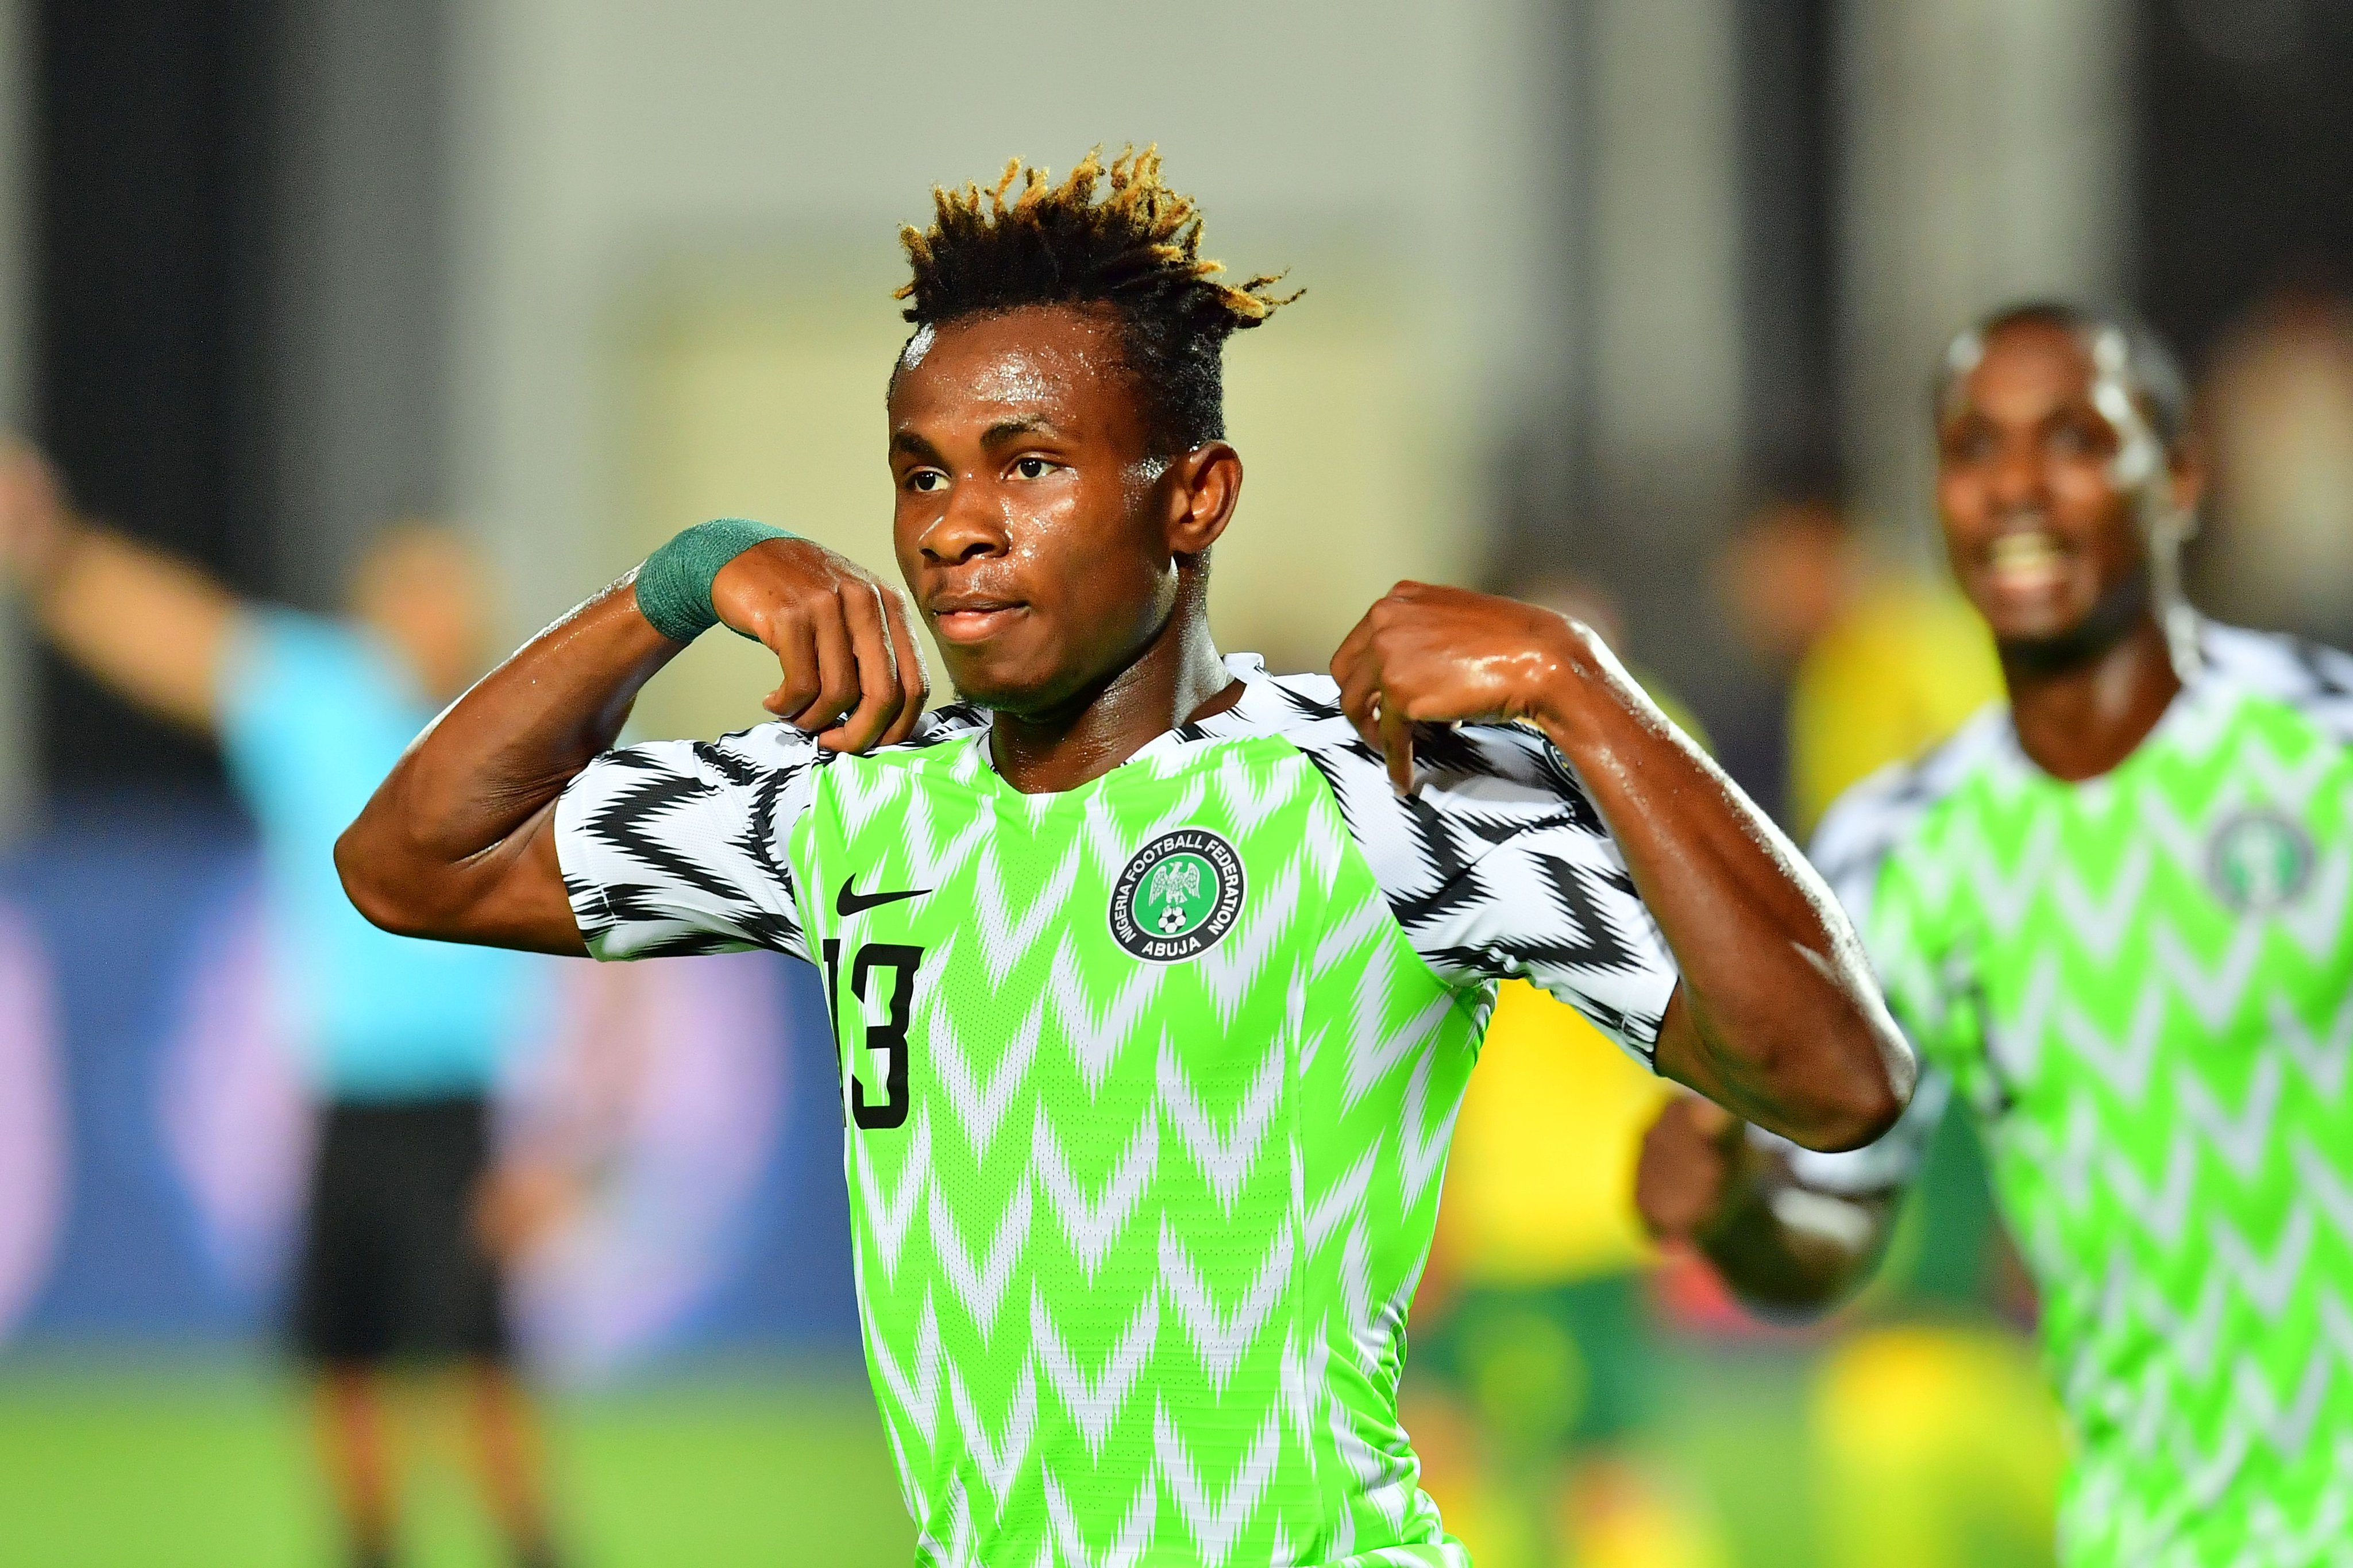 Chukwueze South Africa July 2019